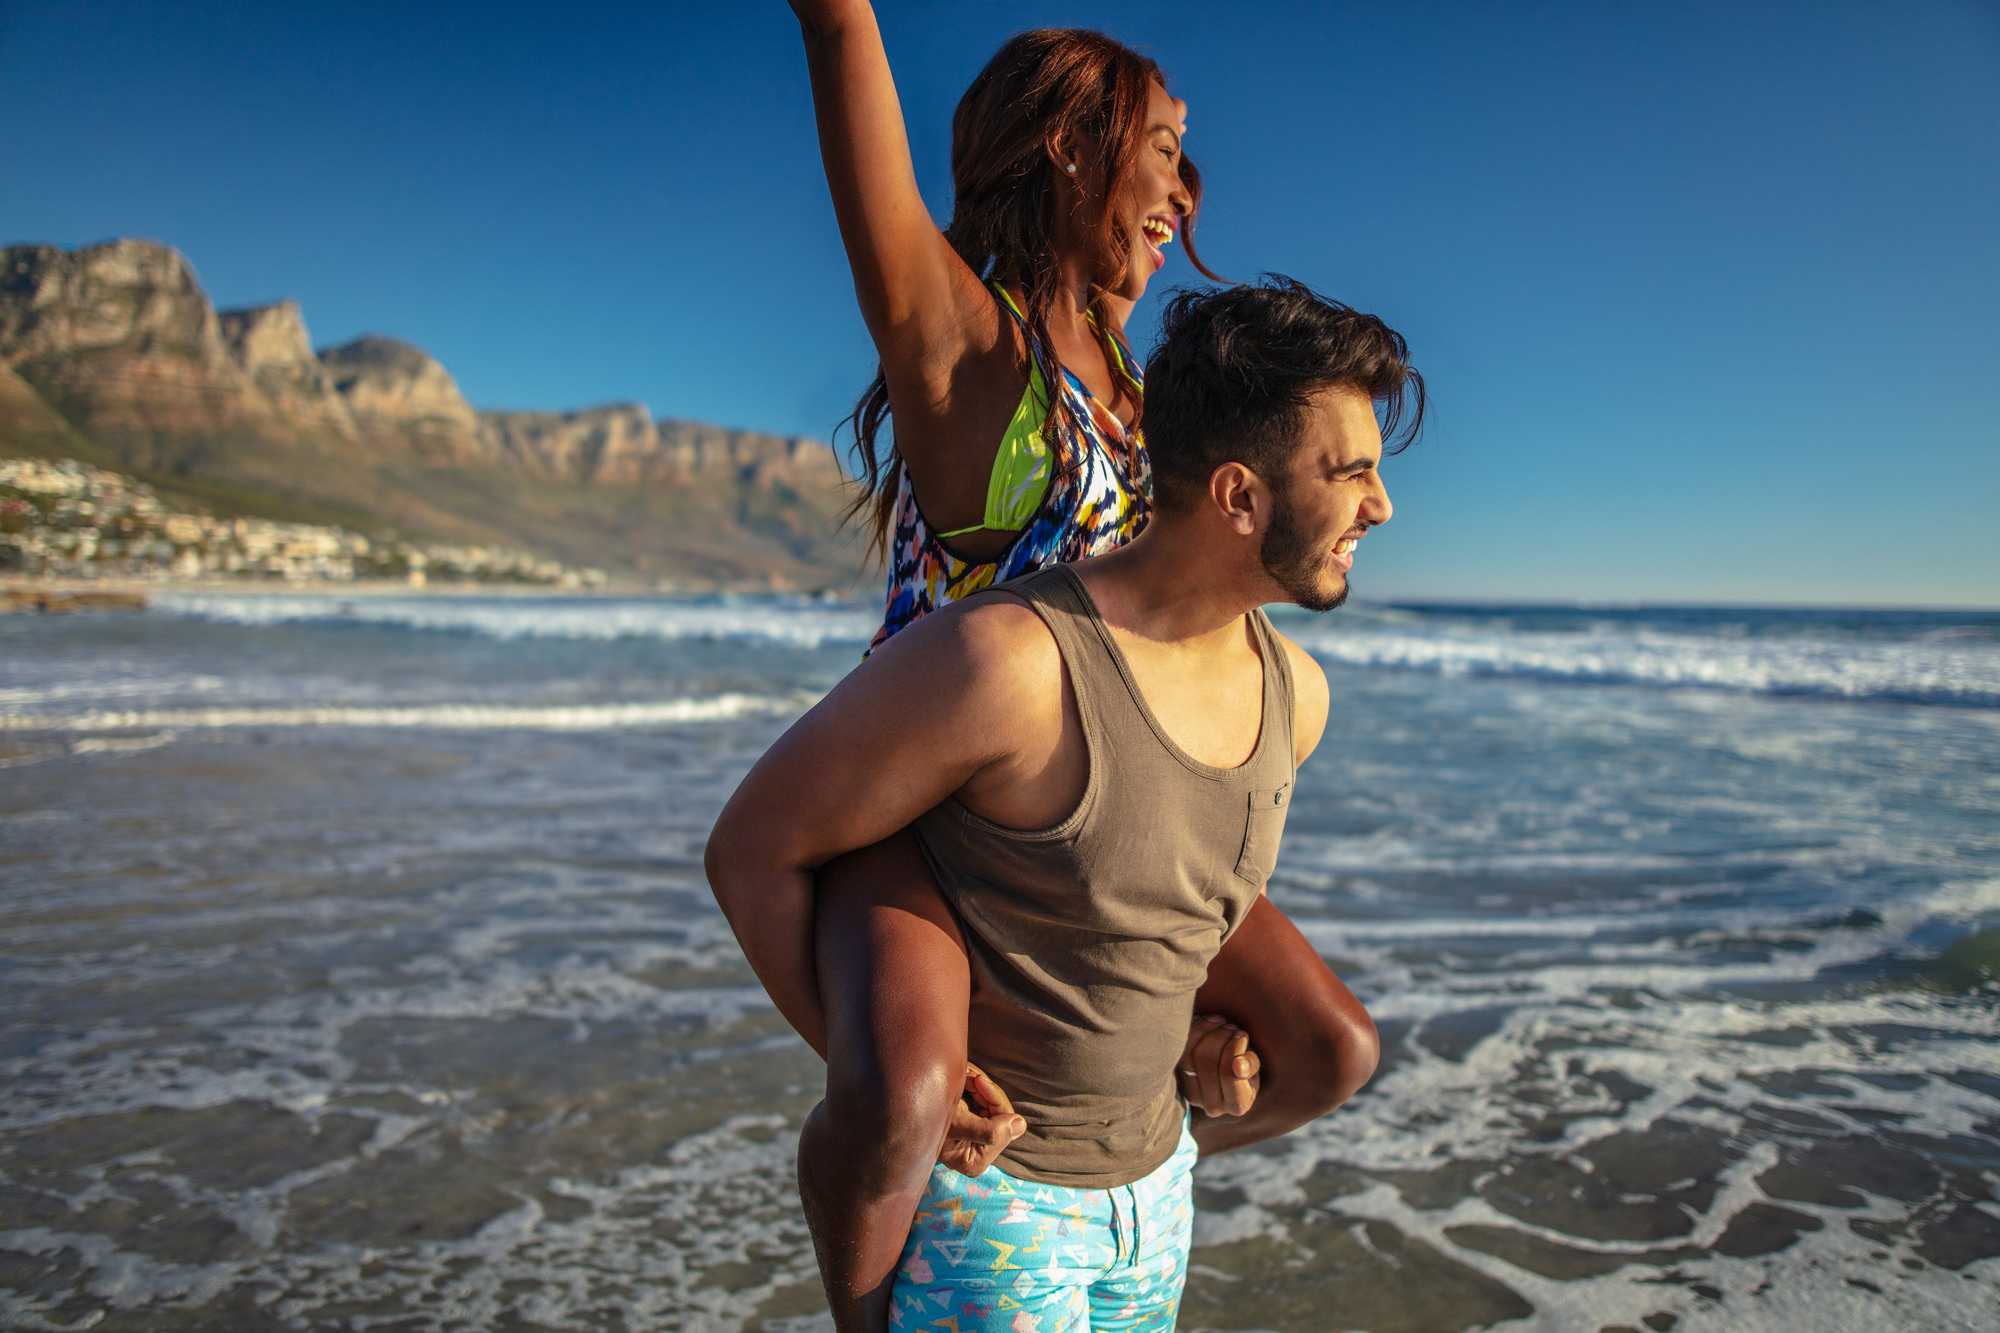 Image of couple having fun on the beach in Cape Town for Tsogo Sun's Image Library & Content Library by Michelle Wastie Photography